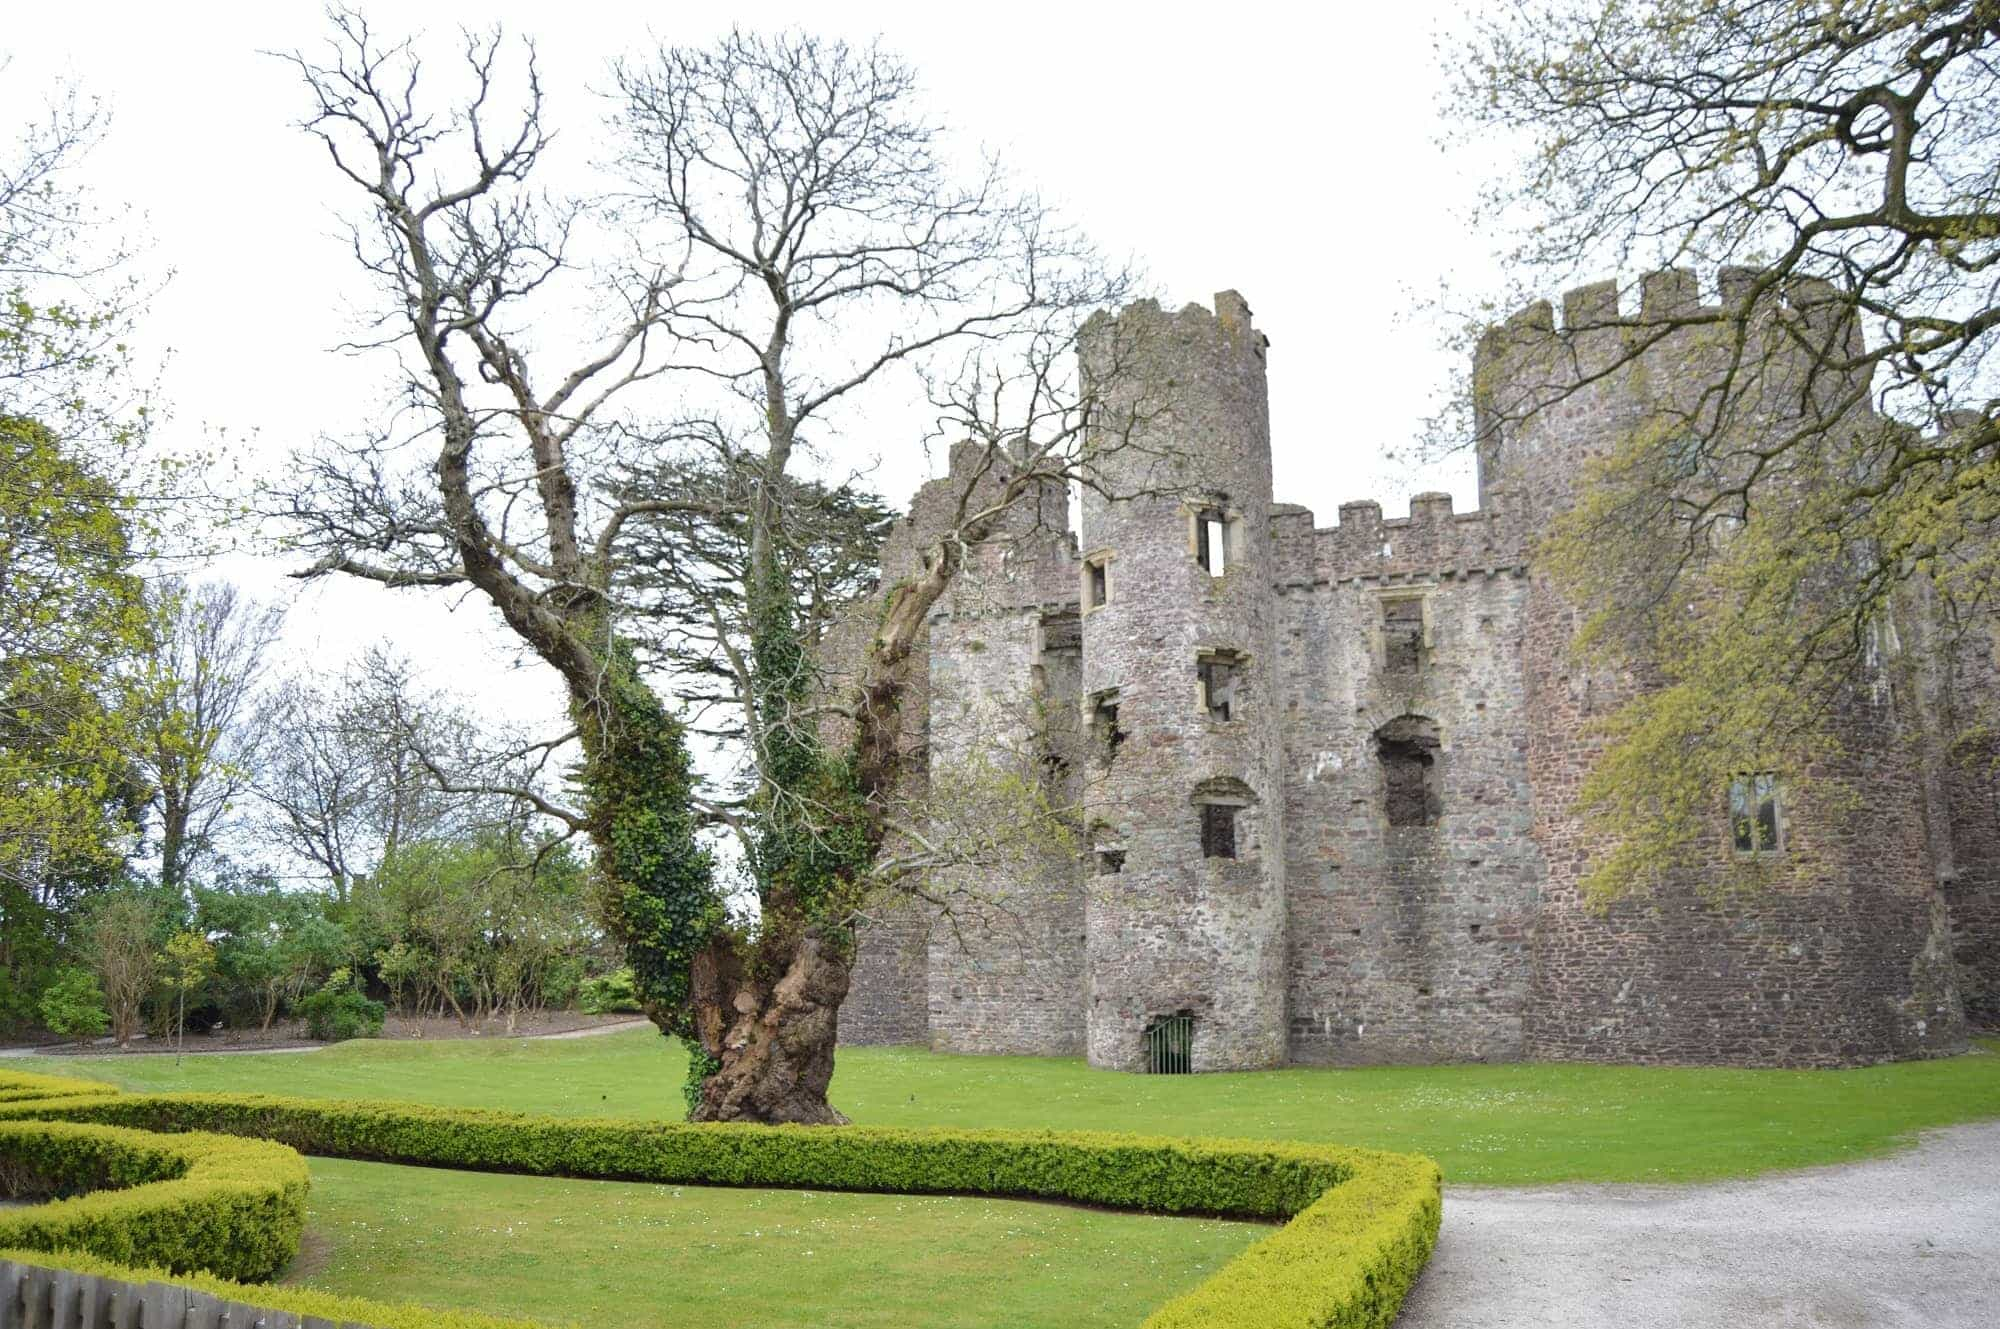 Facing Laugharne Castle